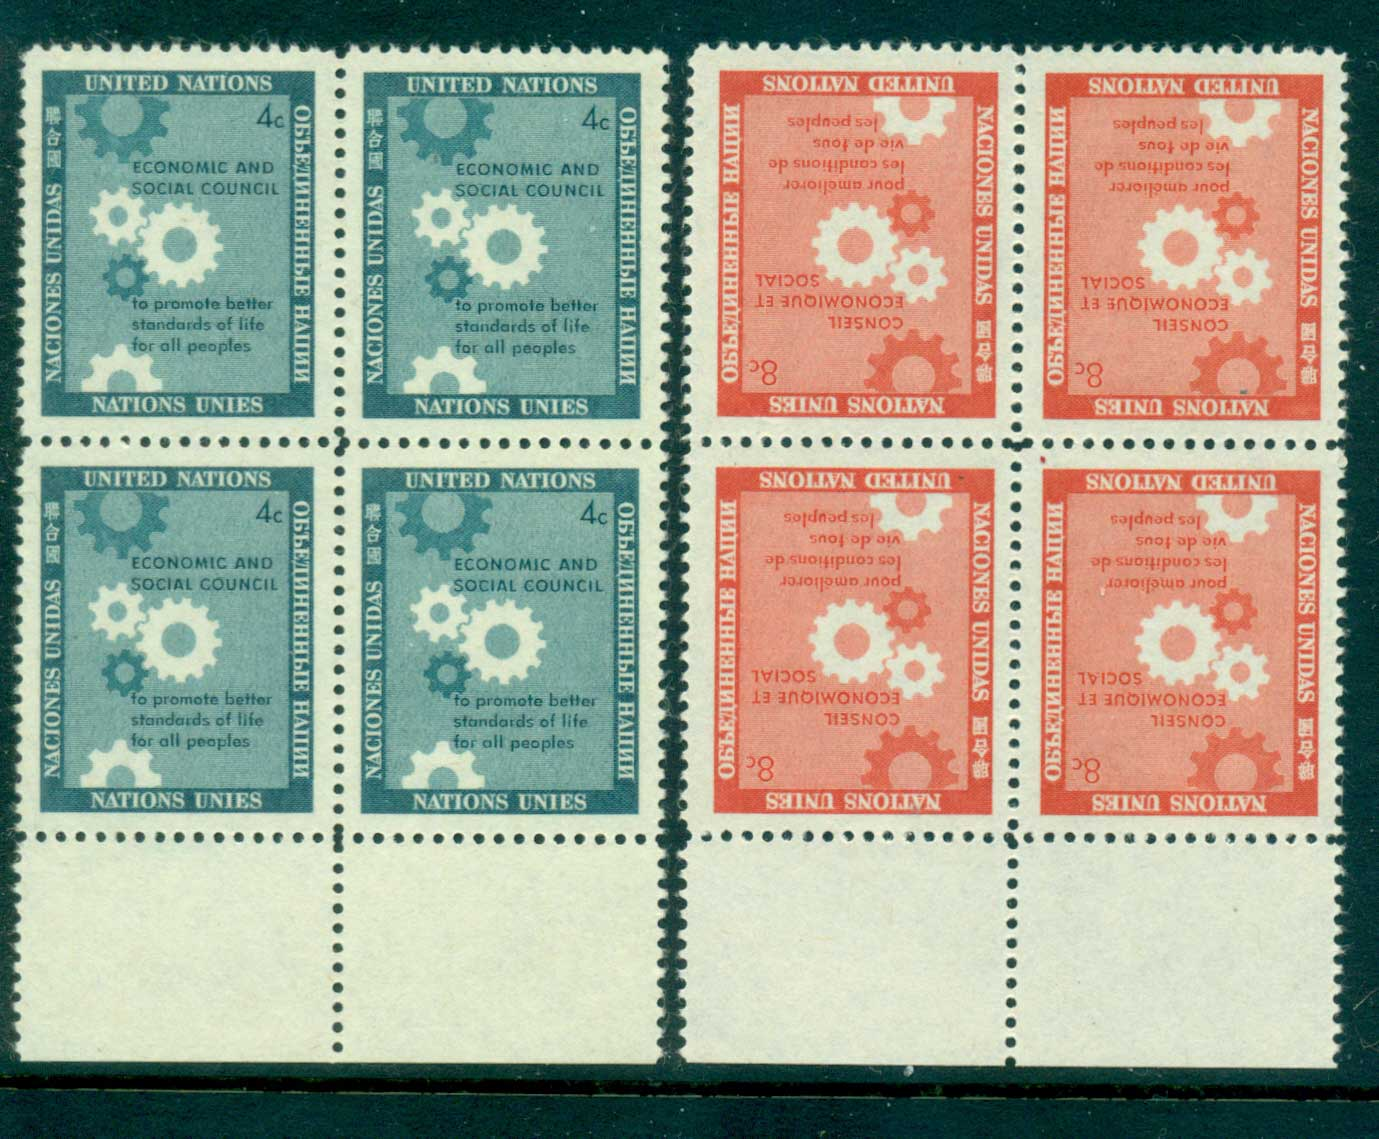 UN New York 1957 Honouring the Economic & Social Council Blk 4 MUH lot40903